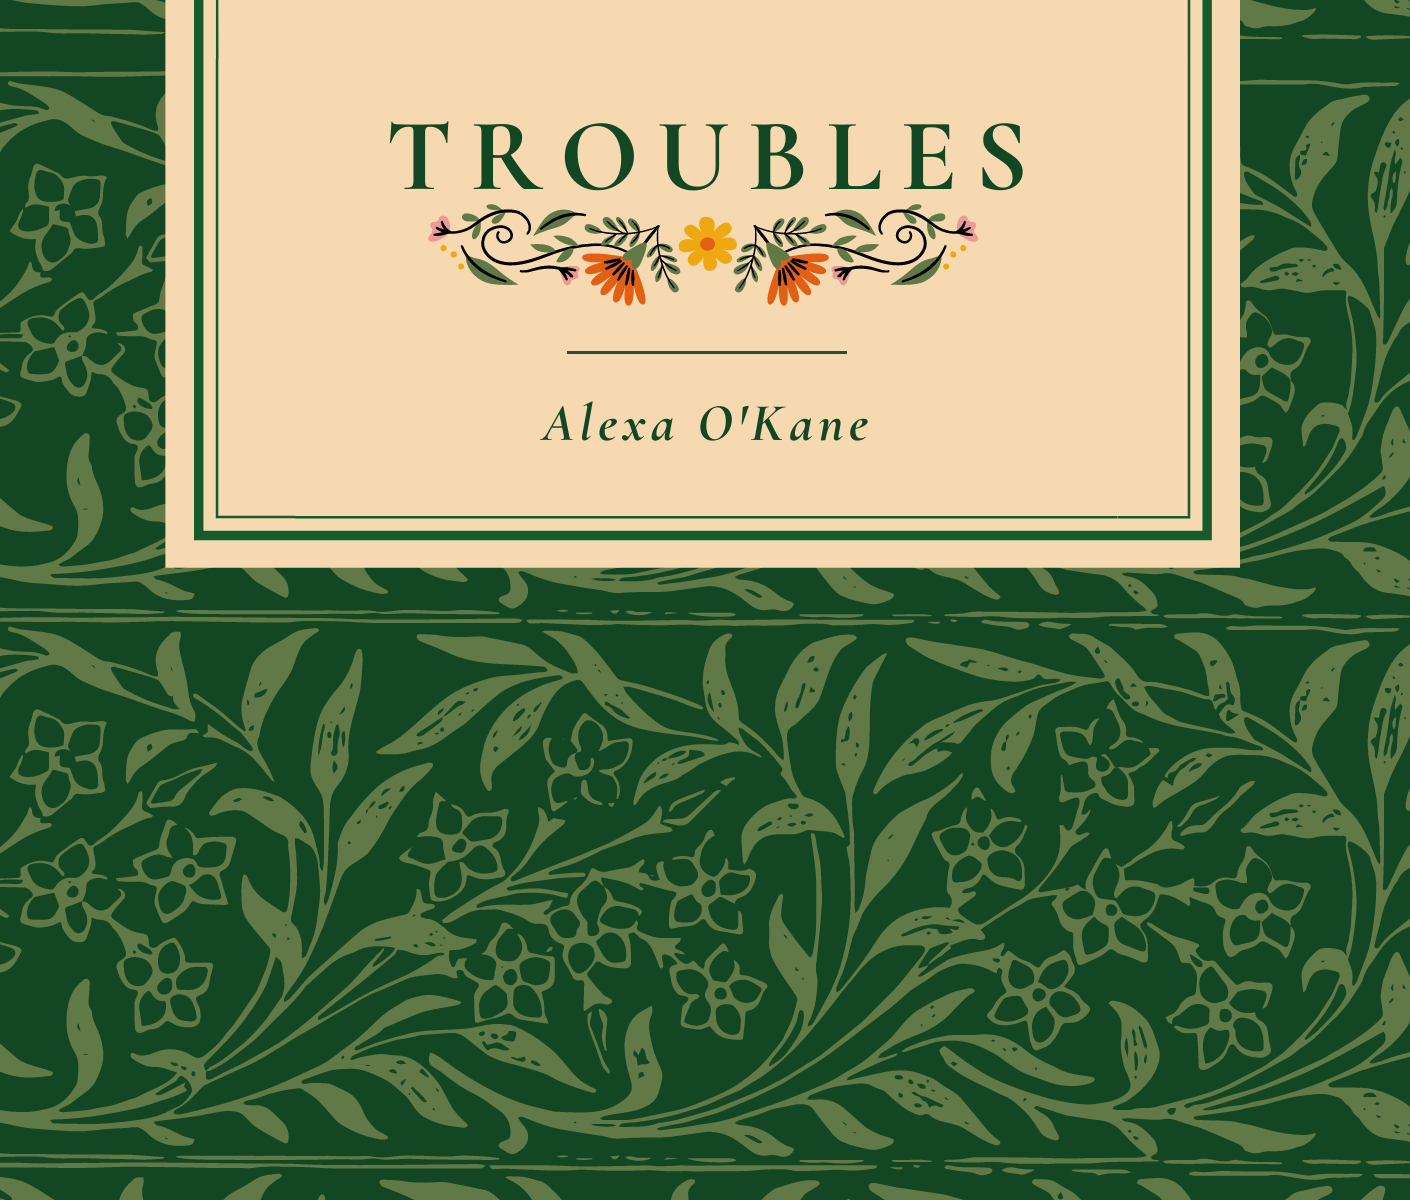 Troubles book cover